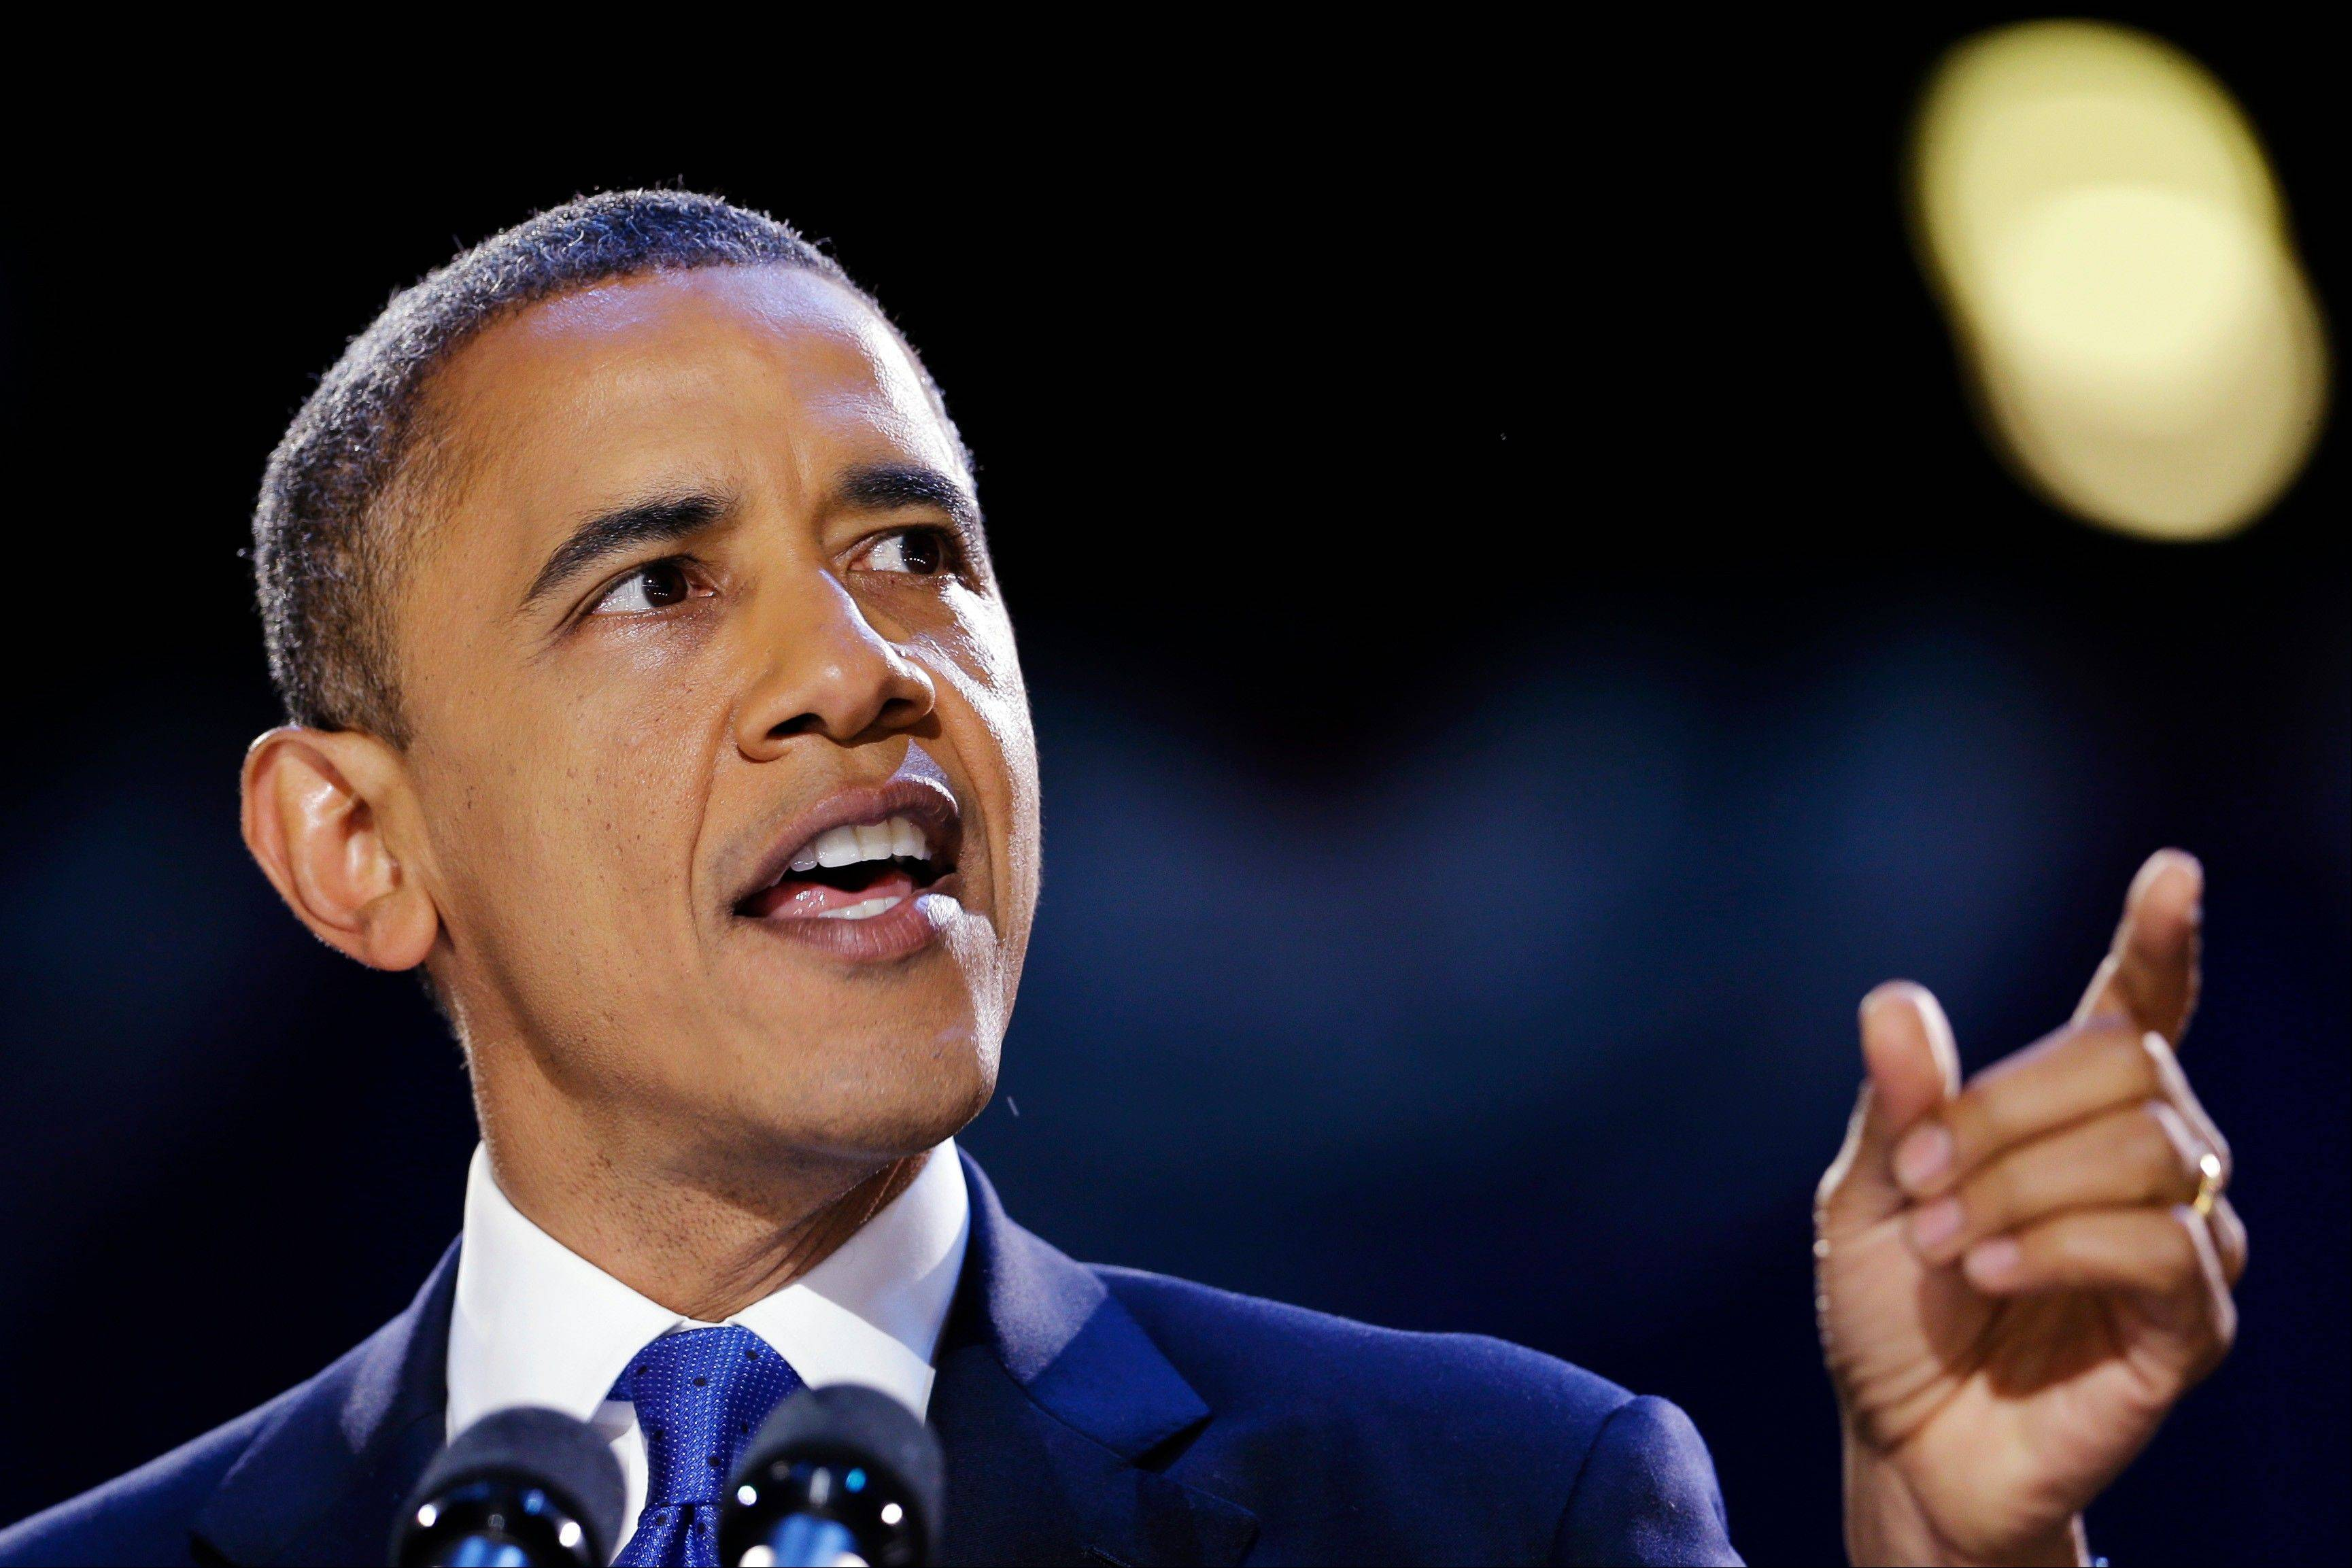 President Barack Obama likely will have a chance to shape the Supreme Court in his next four years in office.